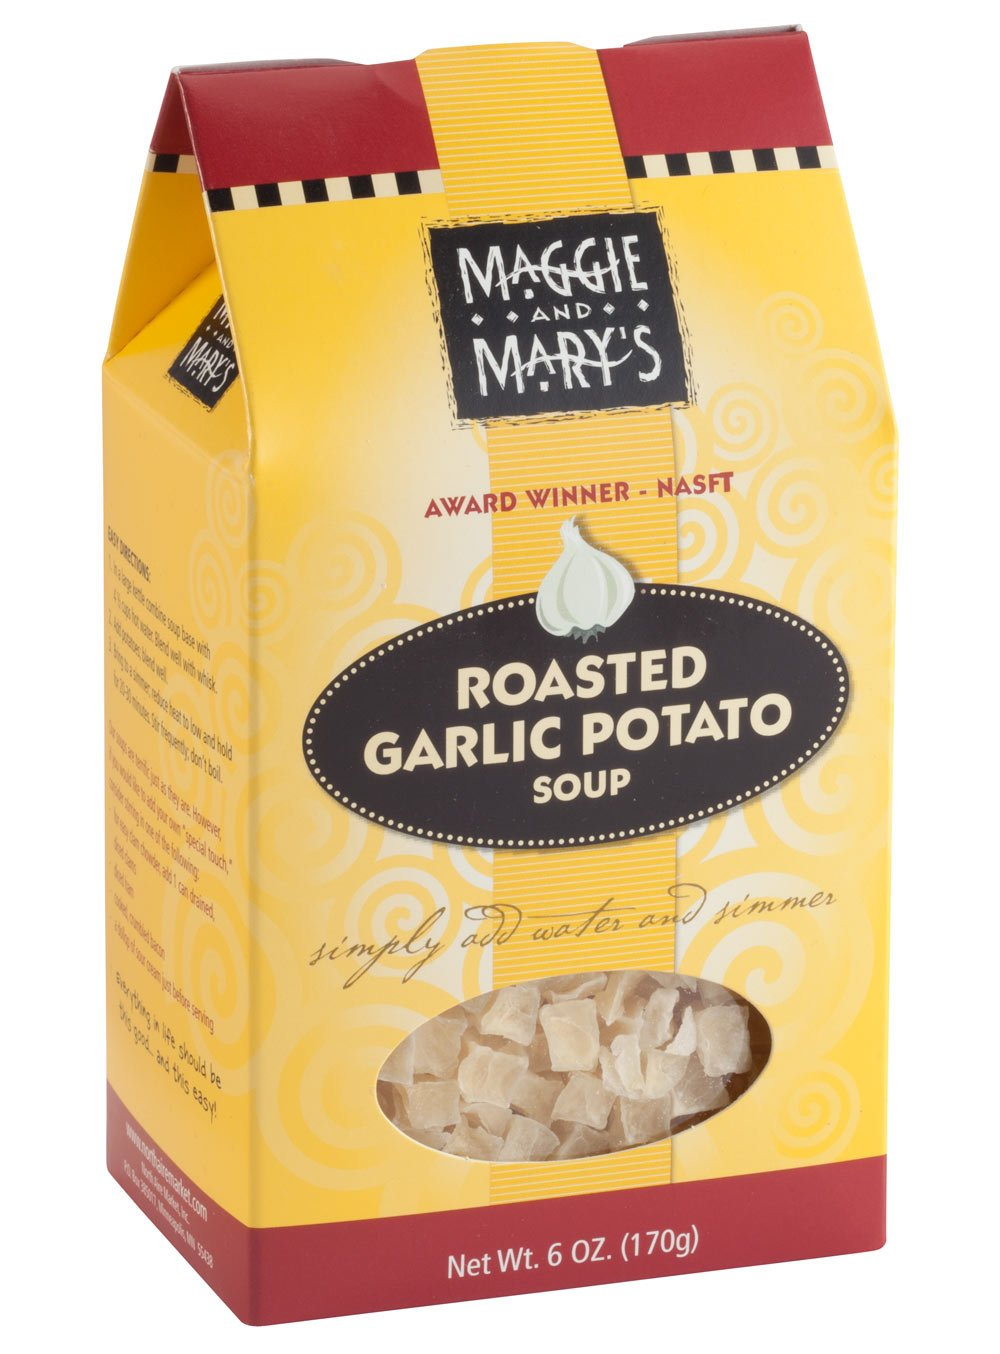 Maggie and Mary's Roasted Garlic Potato Soup